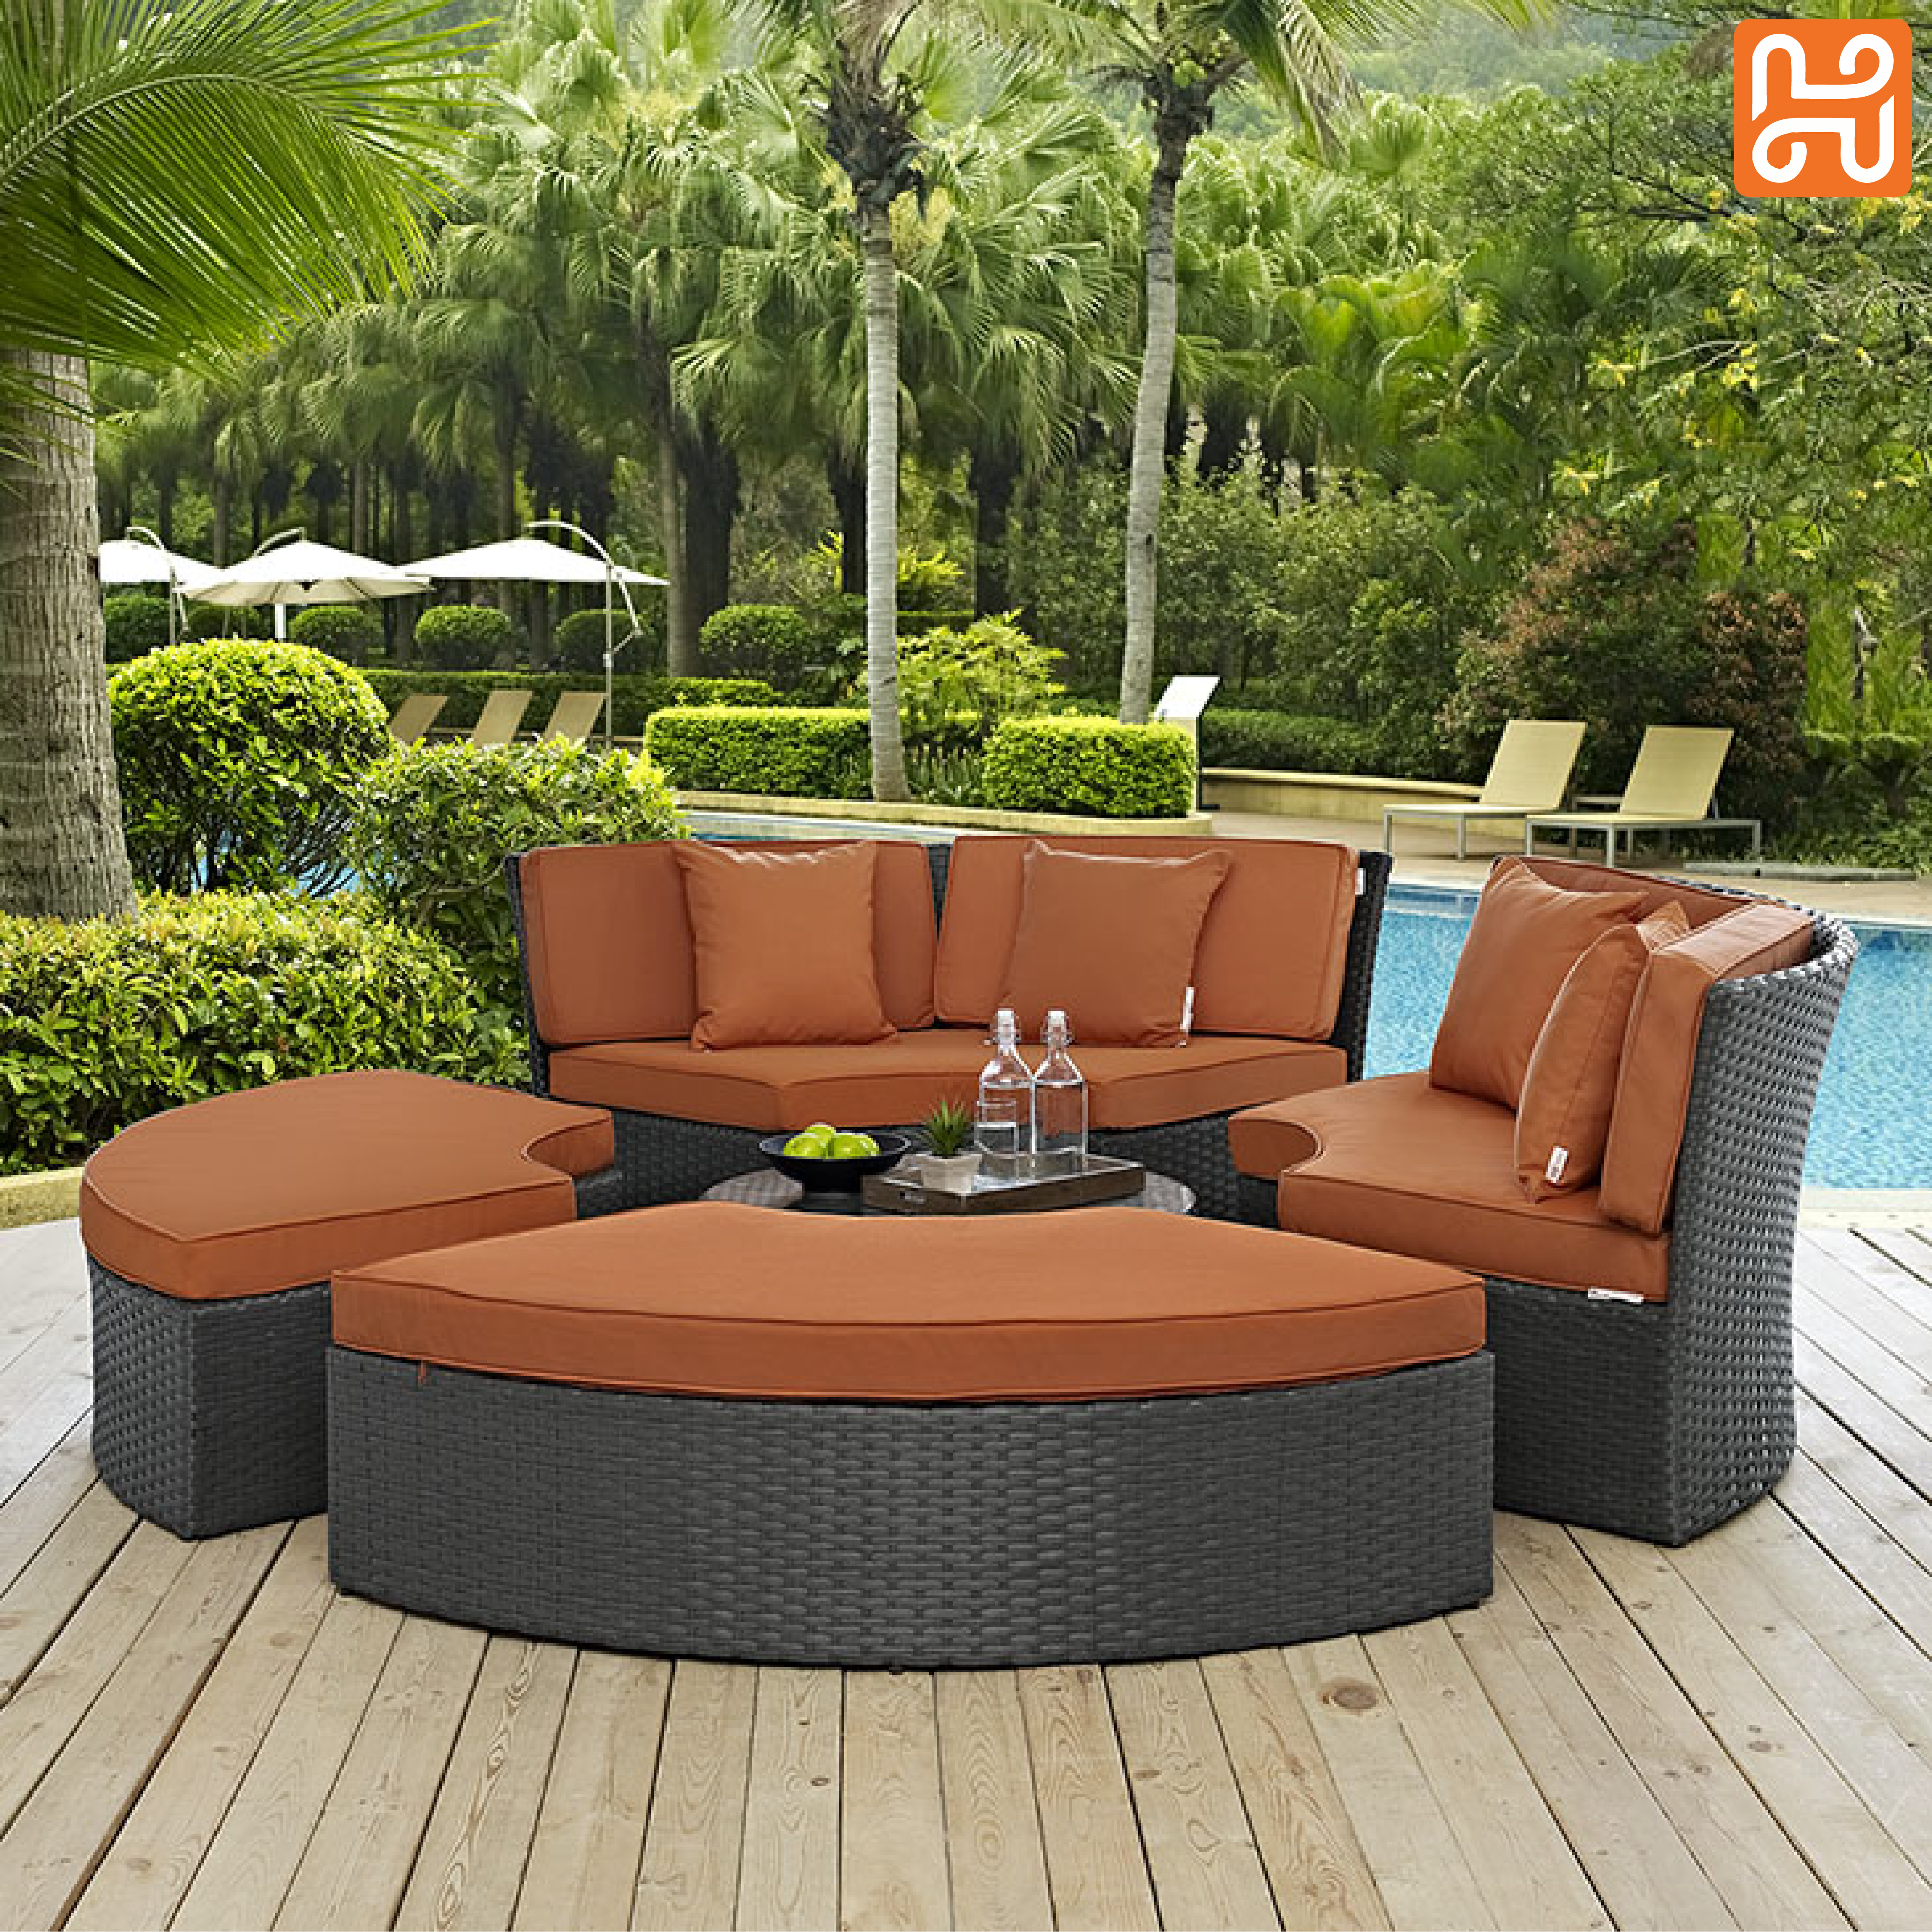 Create An Outdoor Getaway That S Just A